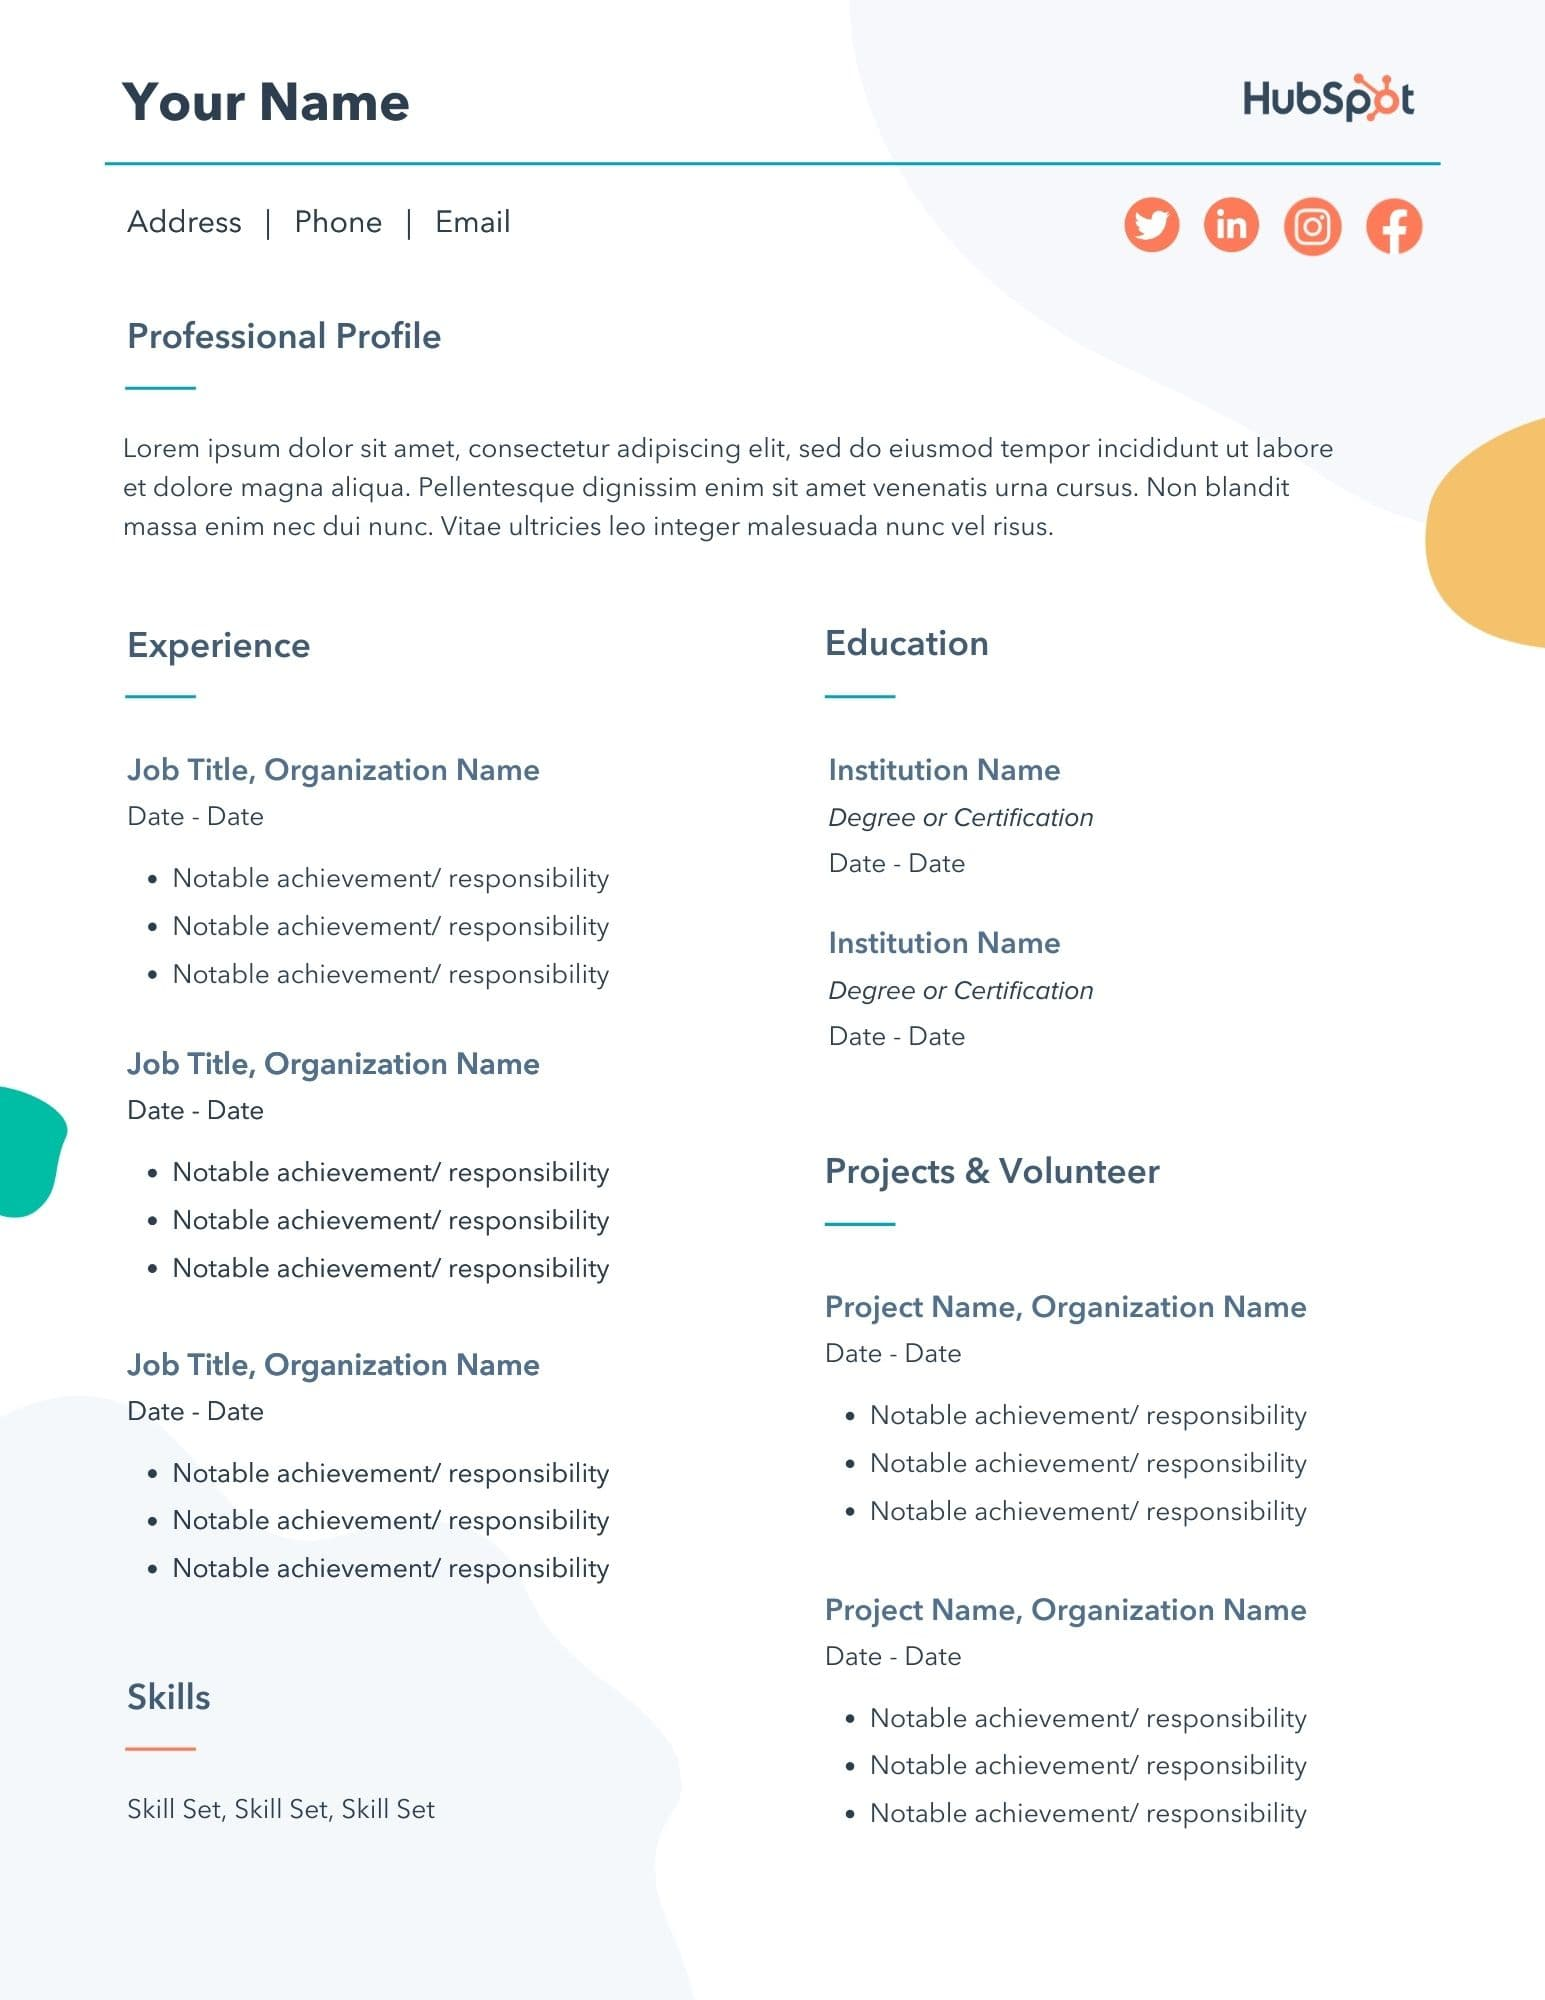 free resume templates for microsoft word to make your own examples of good template Resume Examples Of Good Resume Templates